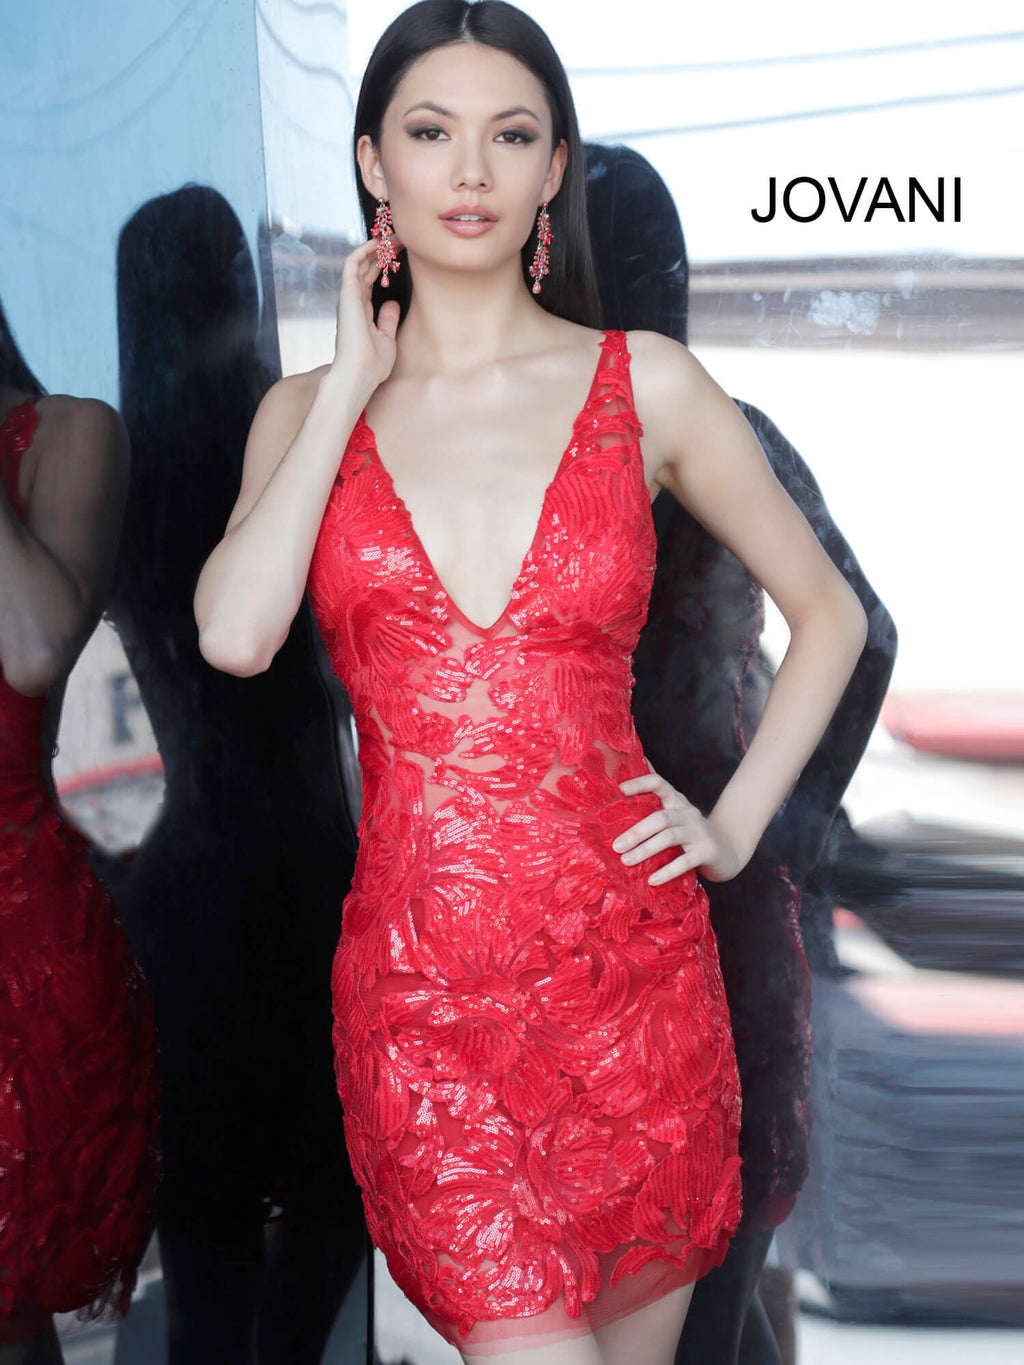 JOVANI 4552 Embellished Cocktail Dress